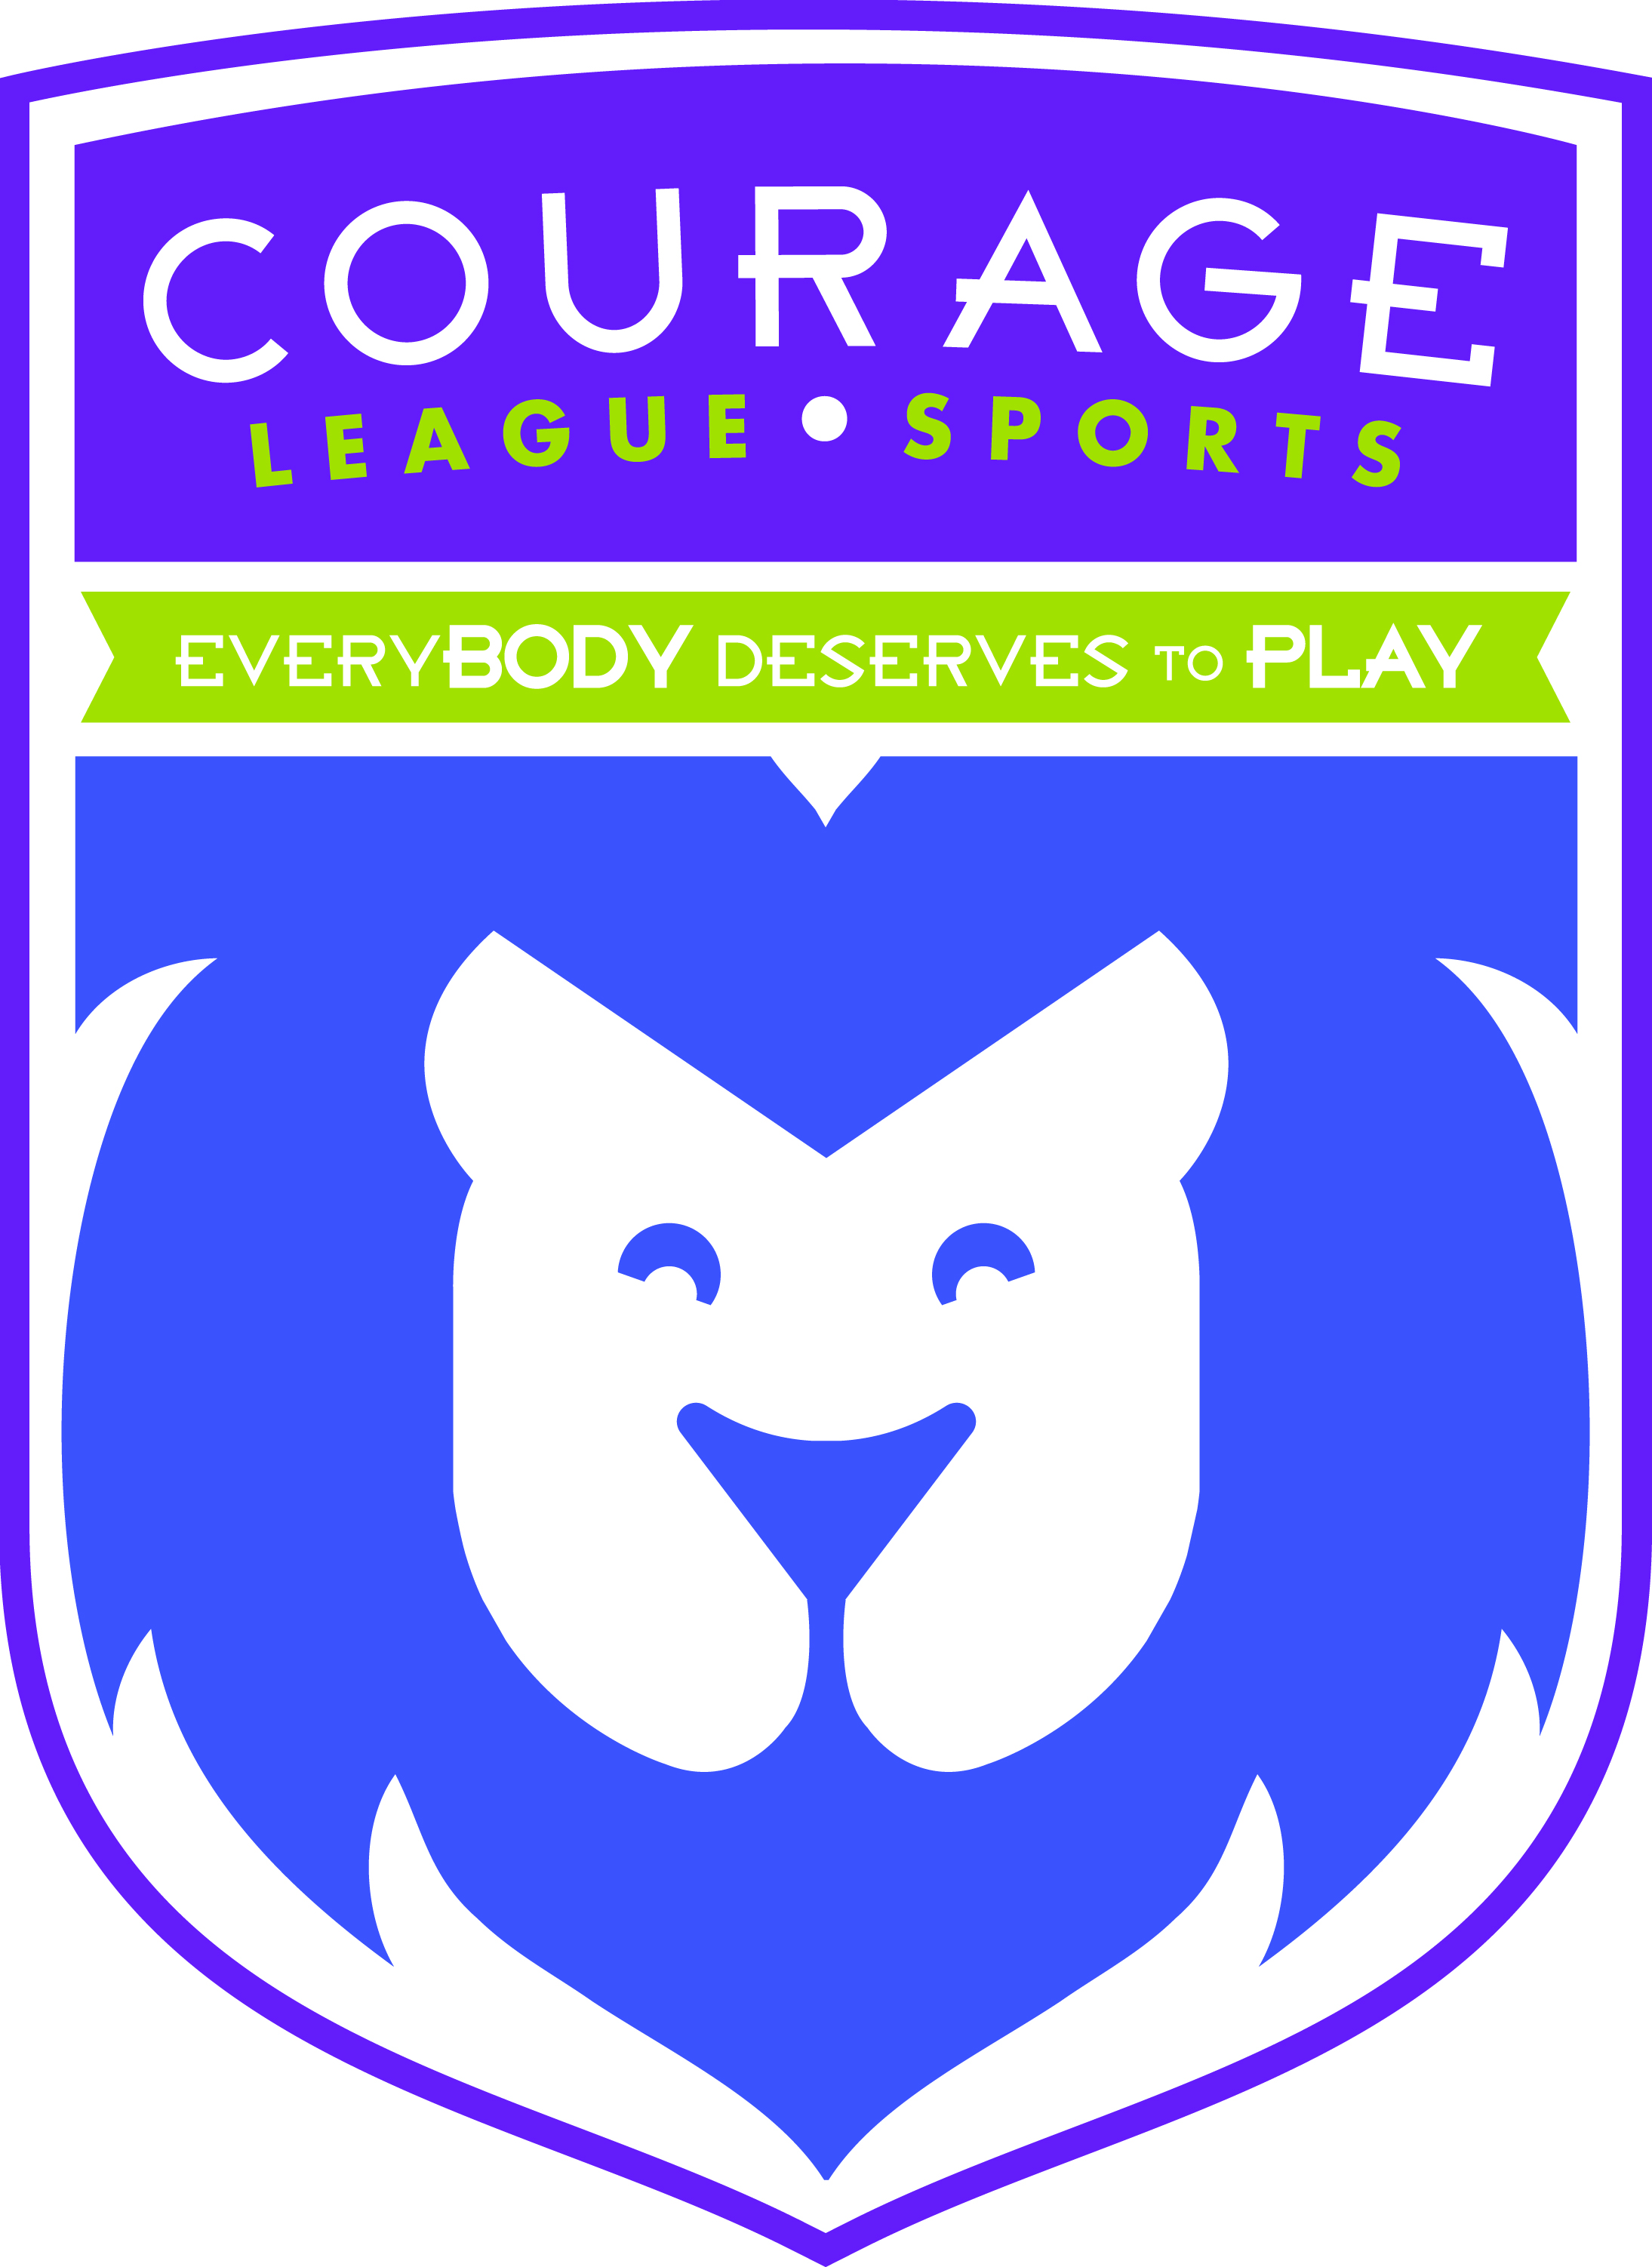 Natural Iowa supports Courage League Sports